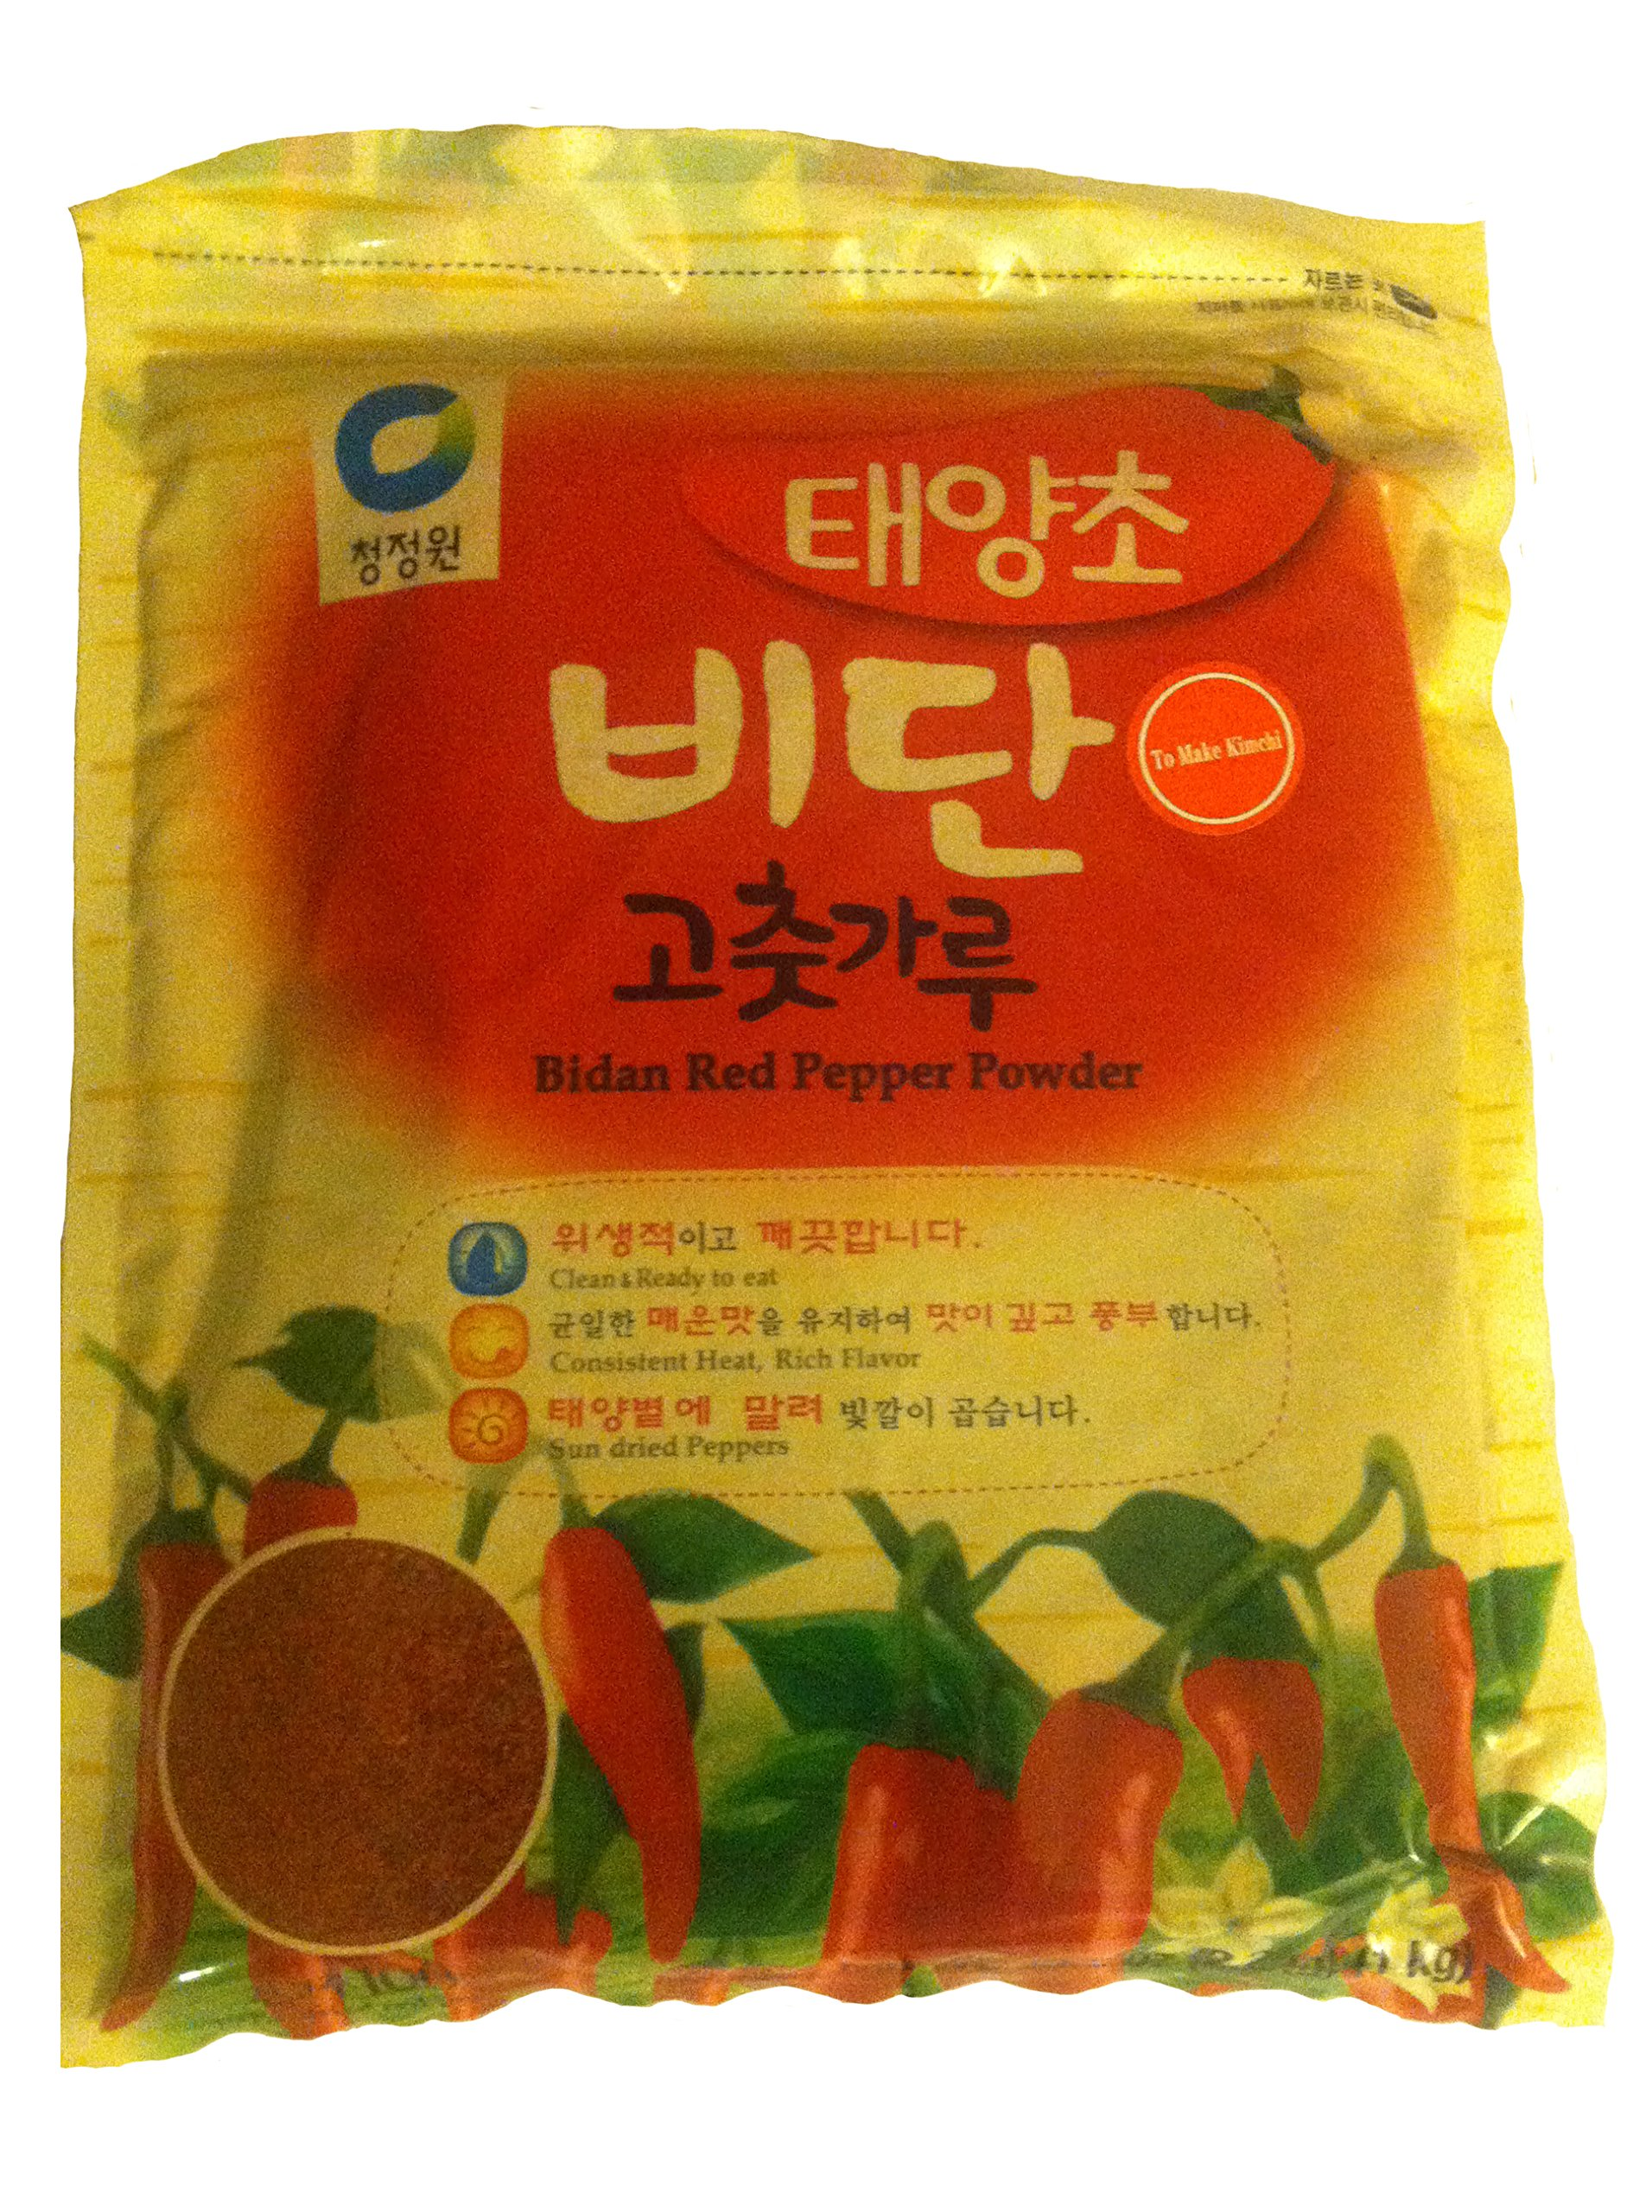 Chung Jung One Chili Powder 2.2 Pounds - Gochugaru Bidan Red Pepper Powder